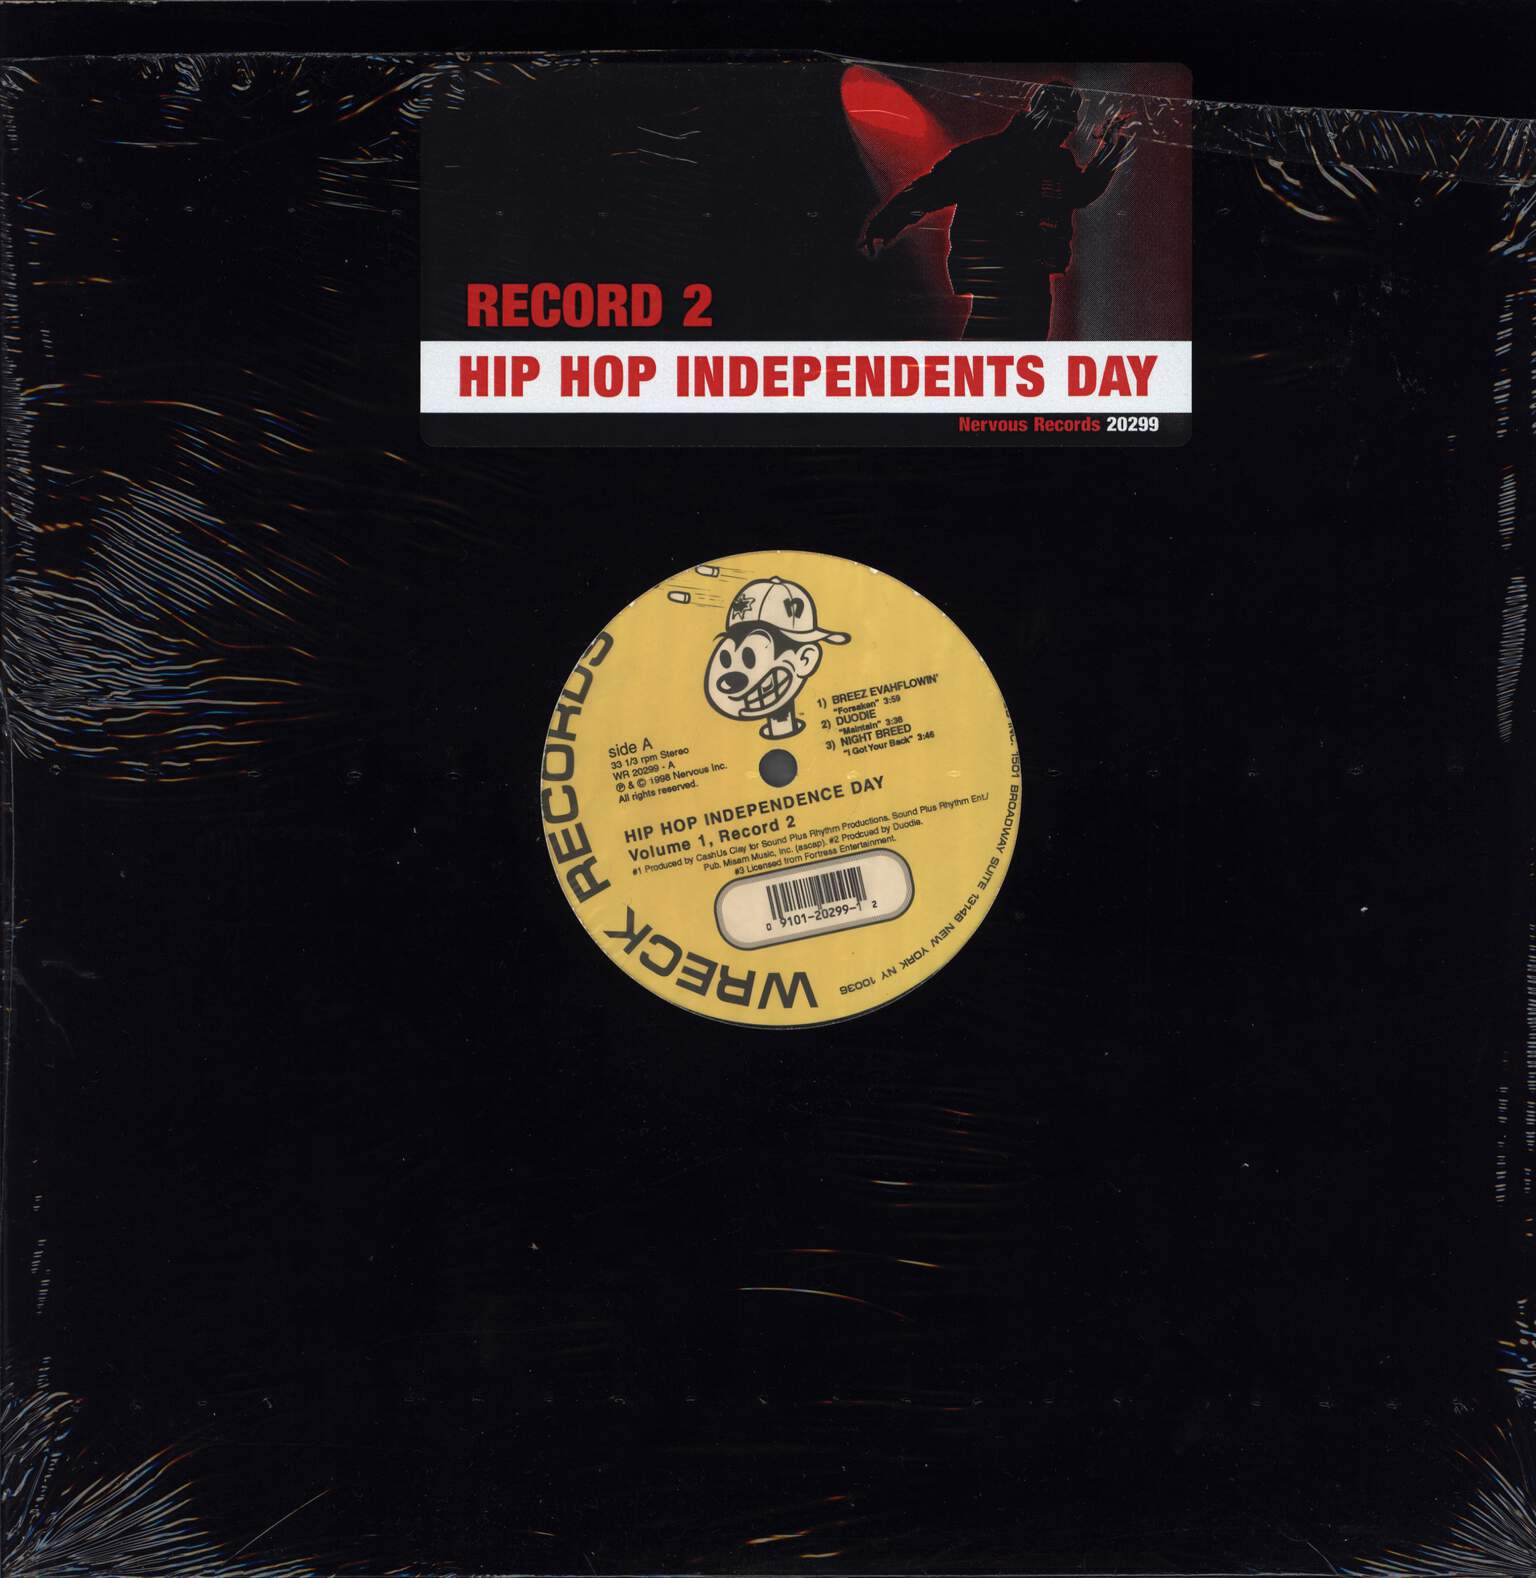 "Various: Hip Hop Independents Day: Volume 1 (Record 2), 12"" Maxi Single (Vinyl)"